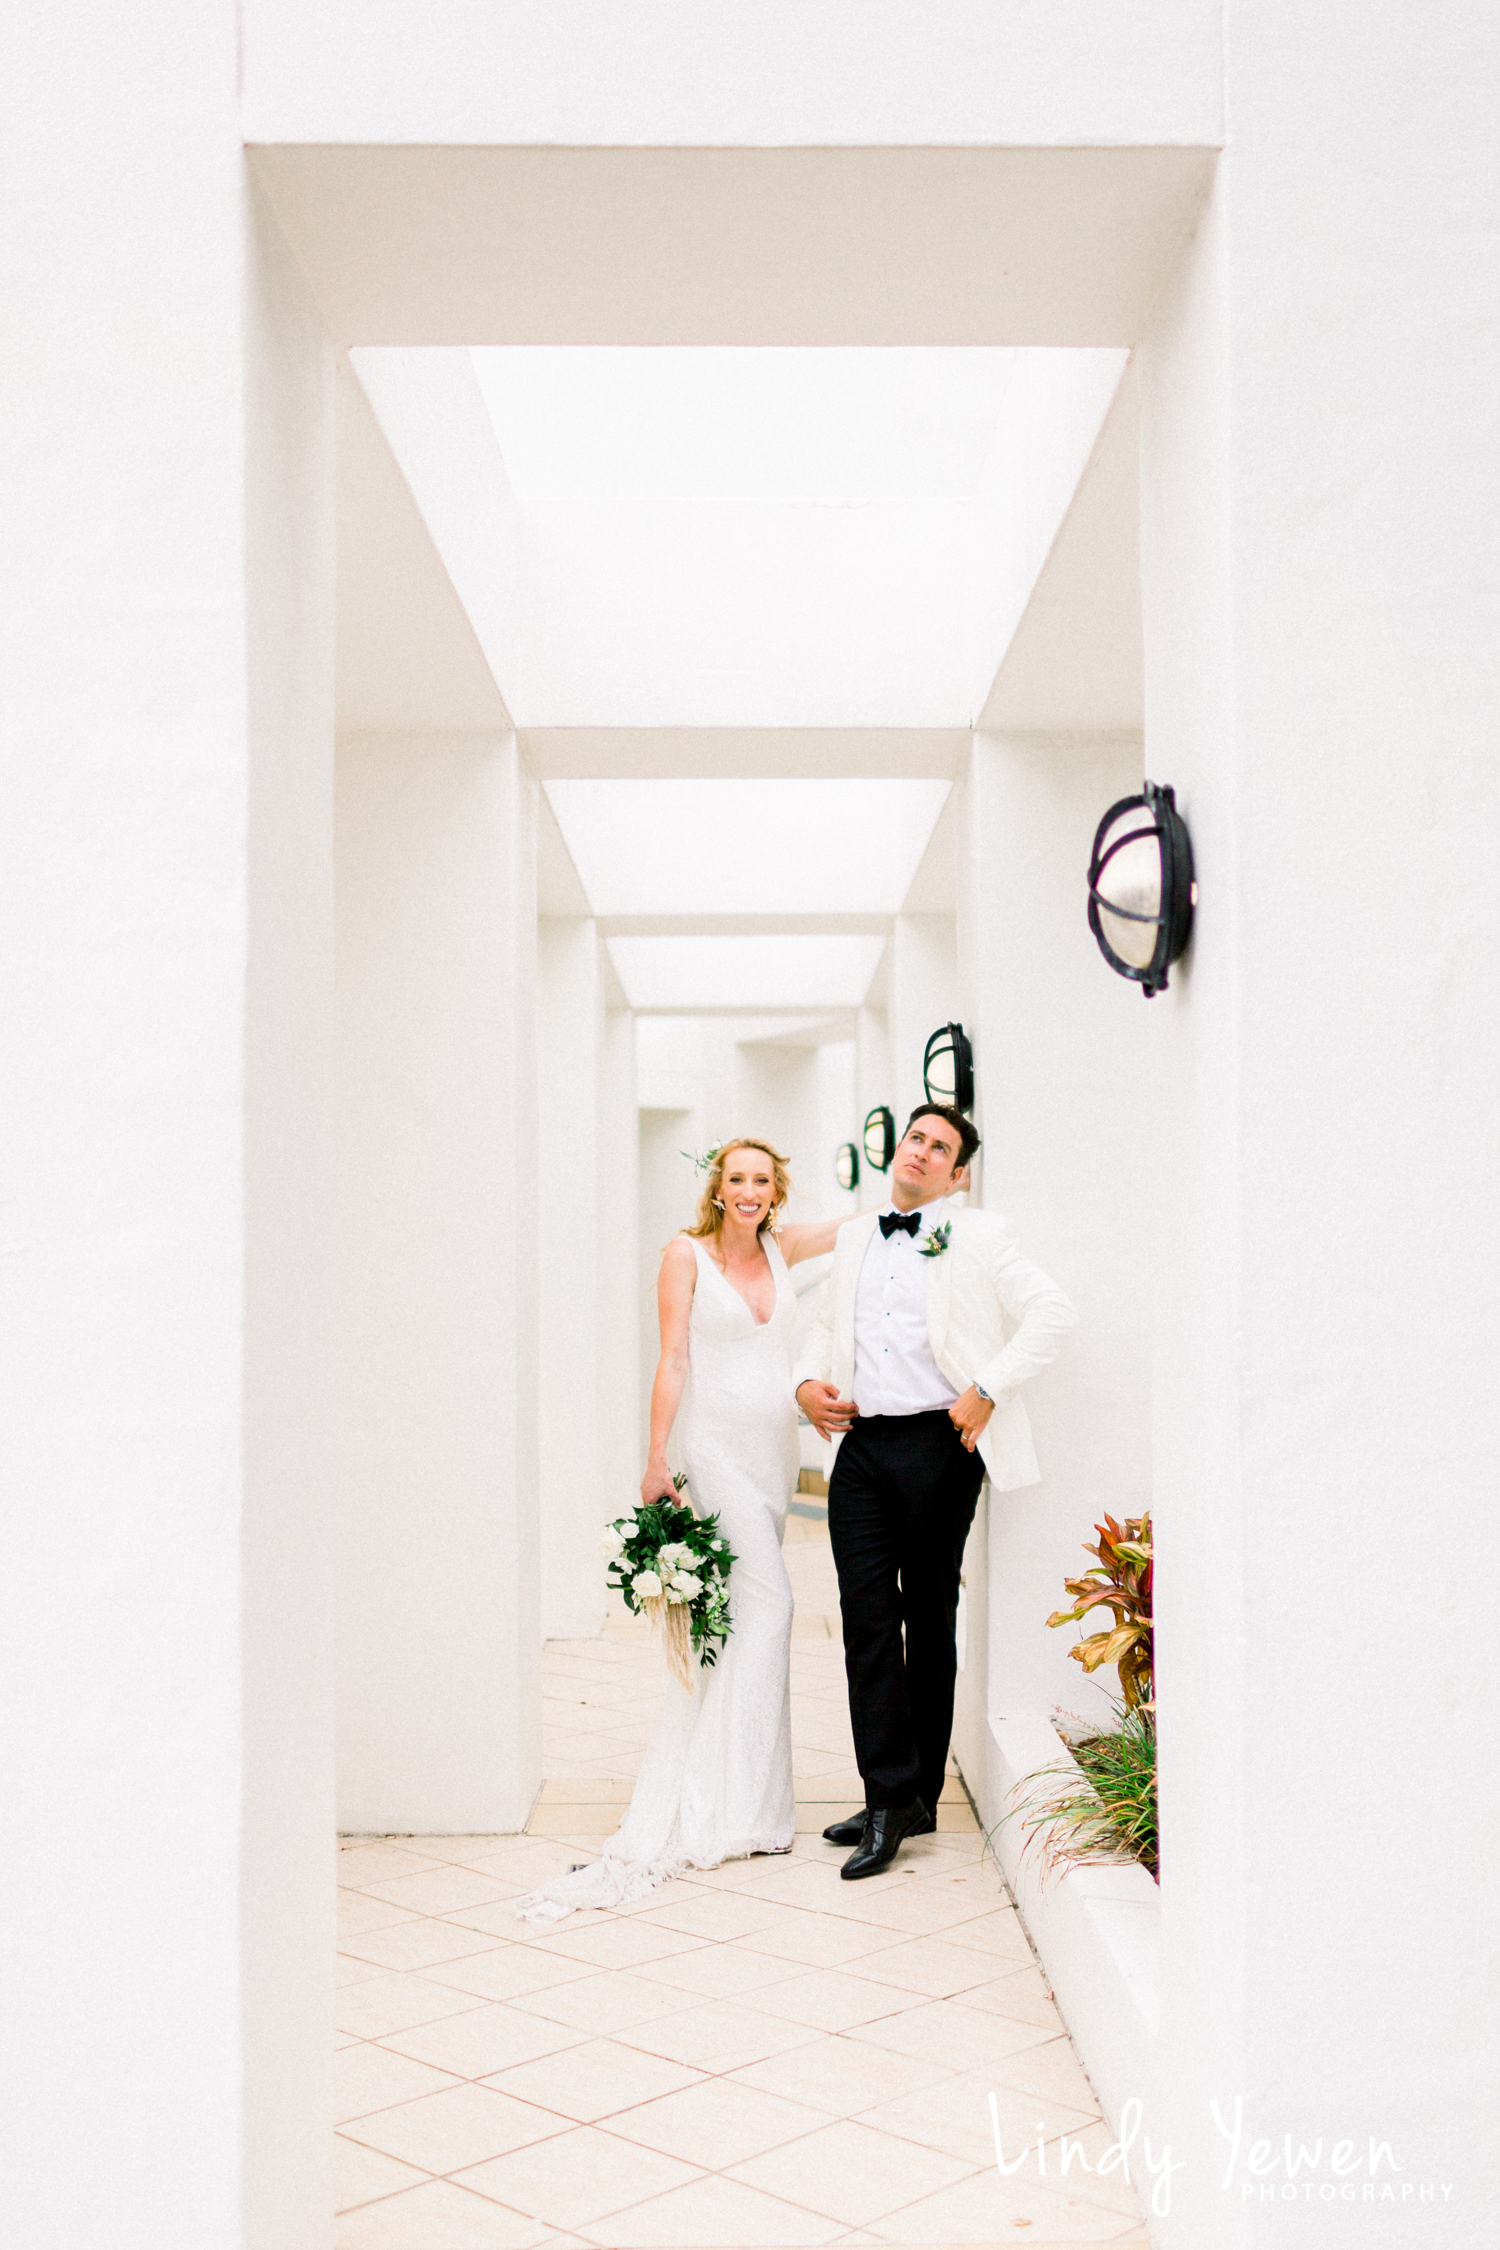 Noosa-Weddings-Amelia-Michael 295.jpg